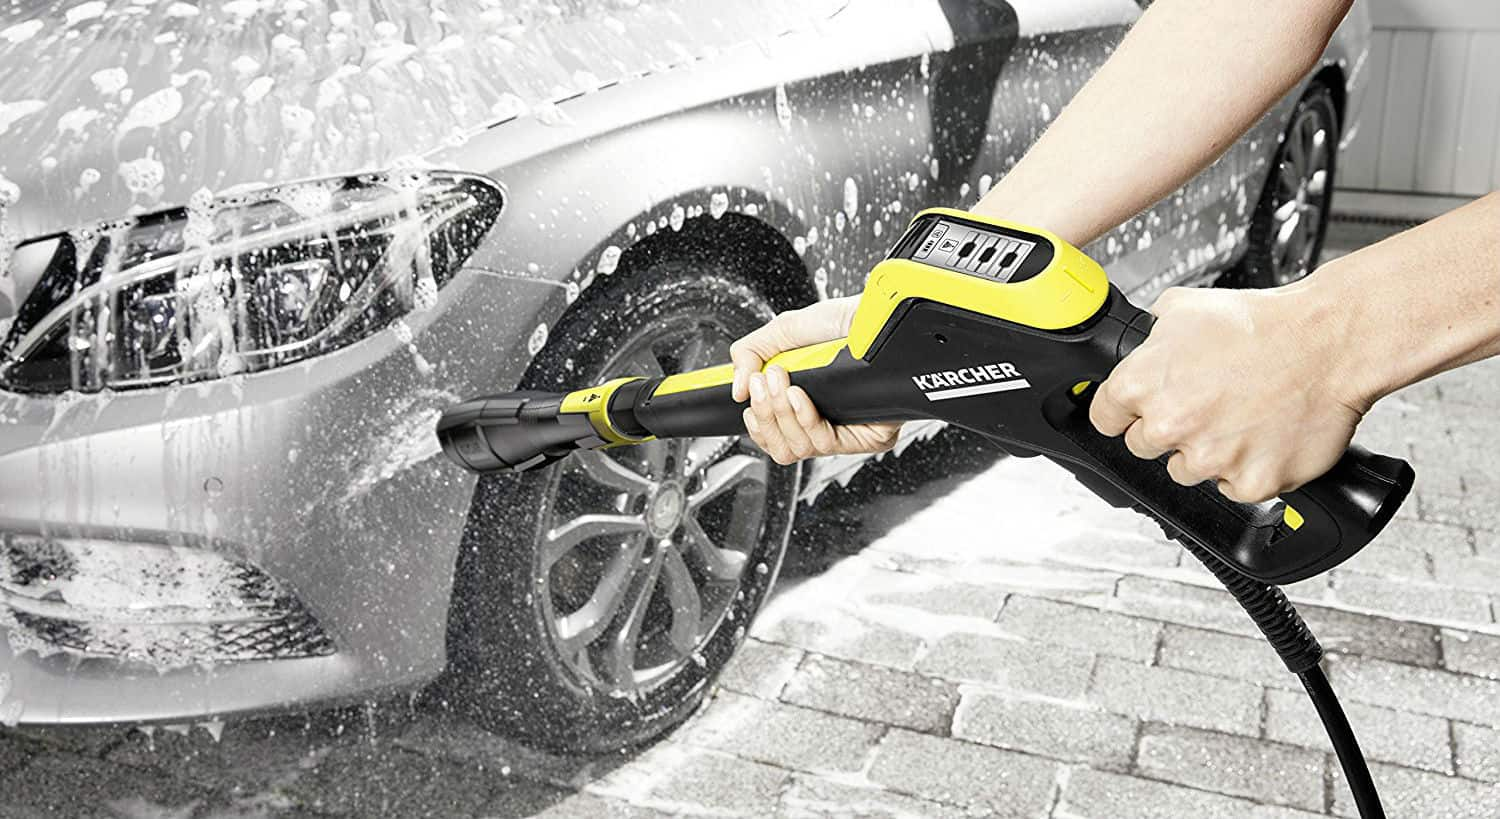 Best Pressure Washer For Cars Reviewed. Top 5 Models and Accessories